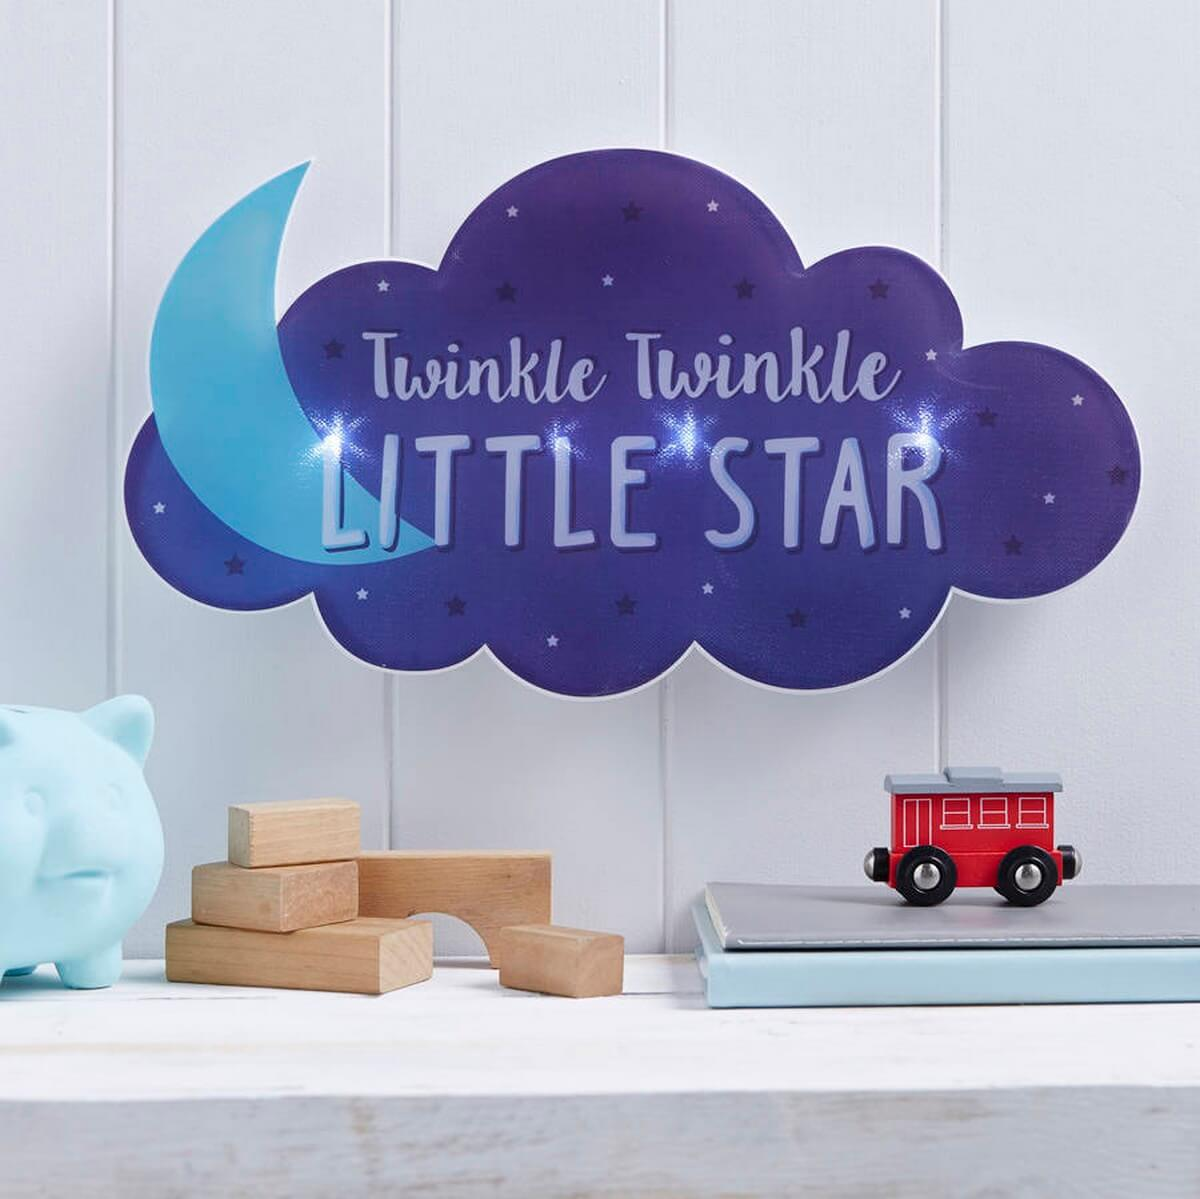 Best Kids Night Light Best Led Night Lights For A Kids Room To Get A Good Night